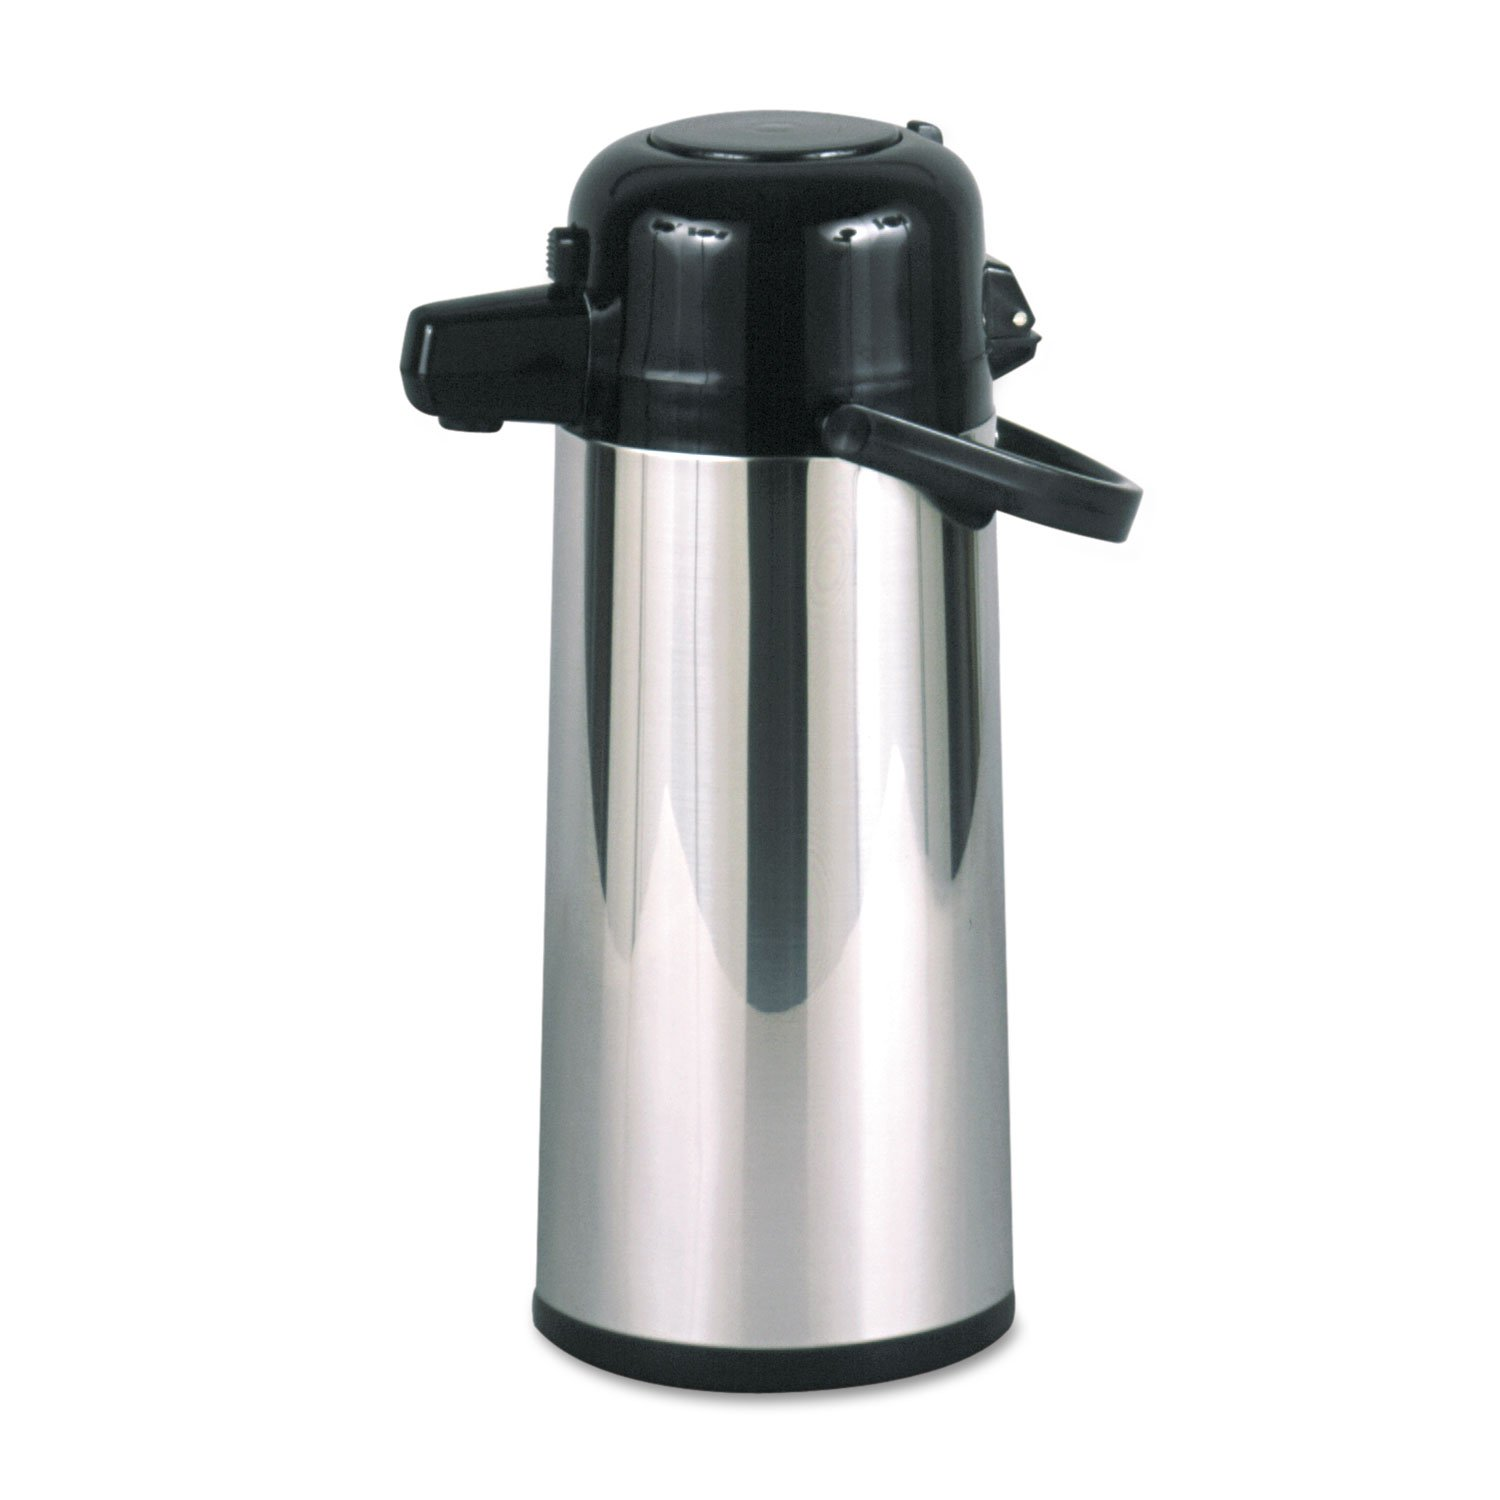 Hormel PAE22B Commercial Grade 2.2L Airpot, w/Push-Button Pump, Stainless Steel/Black